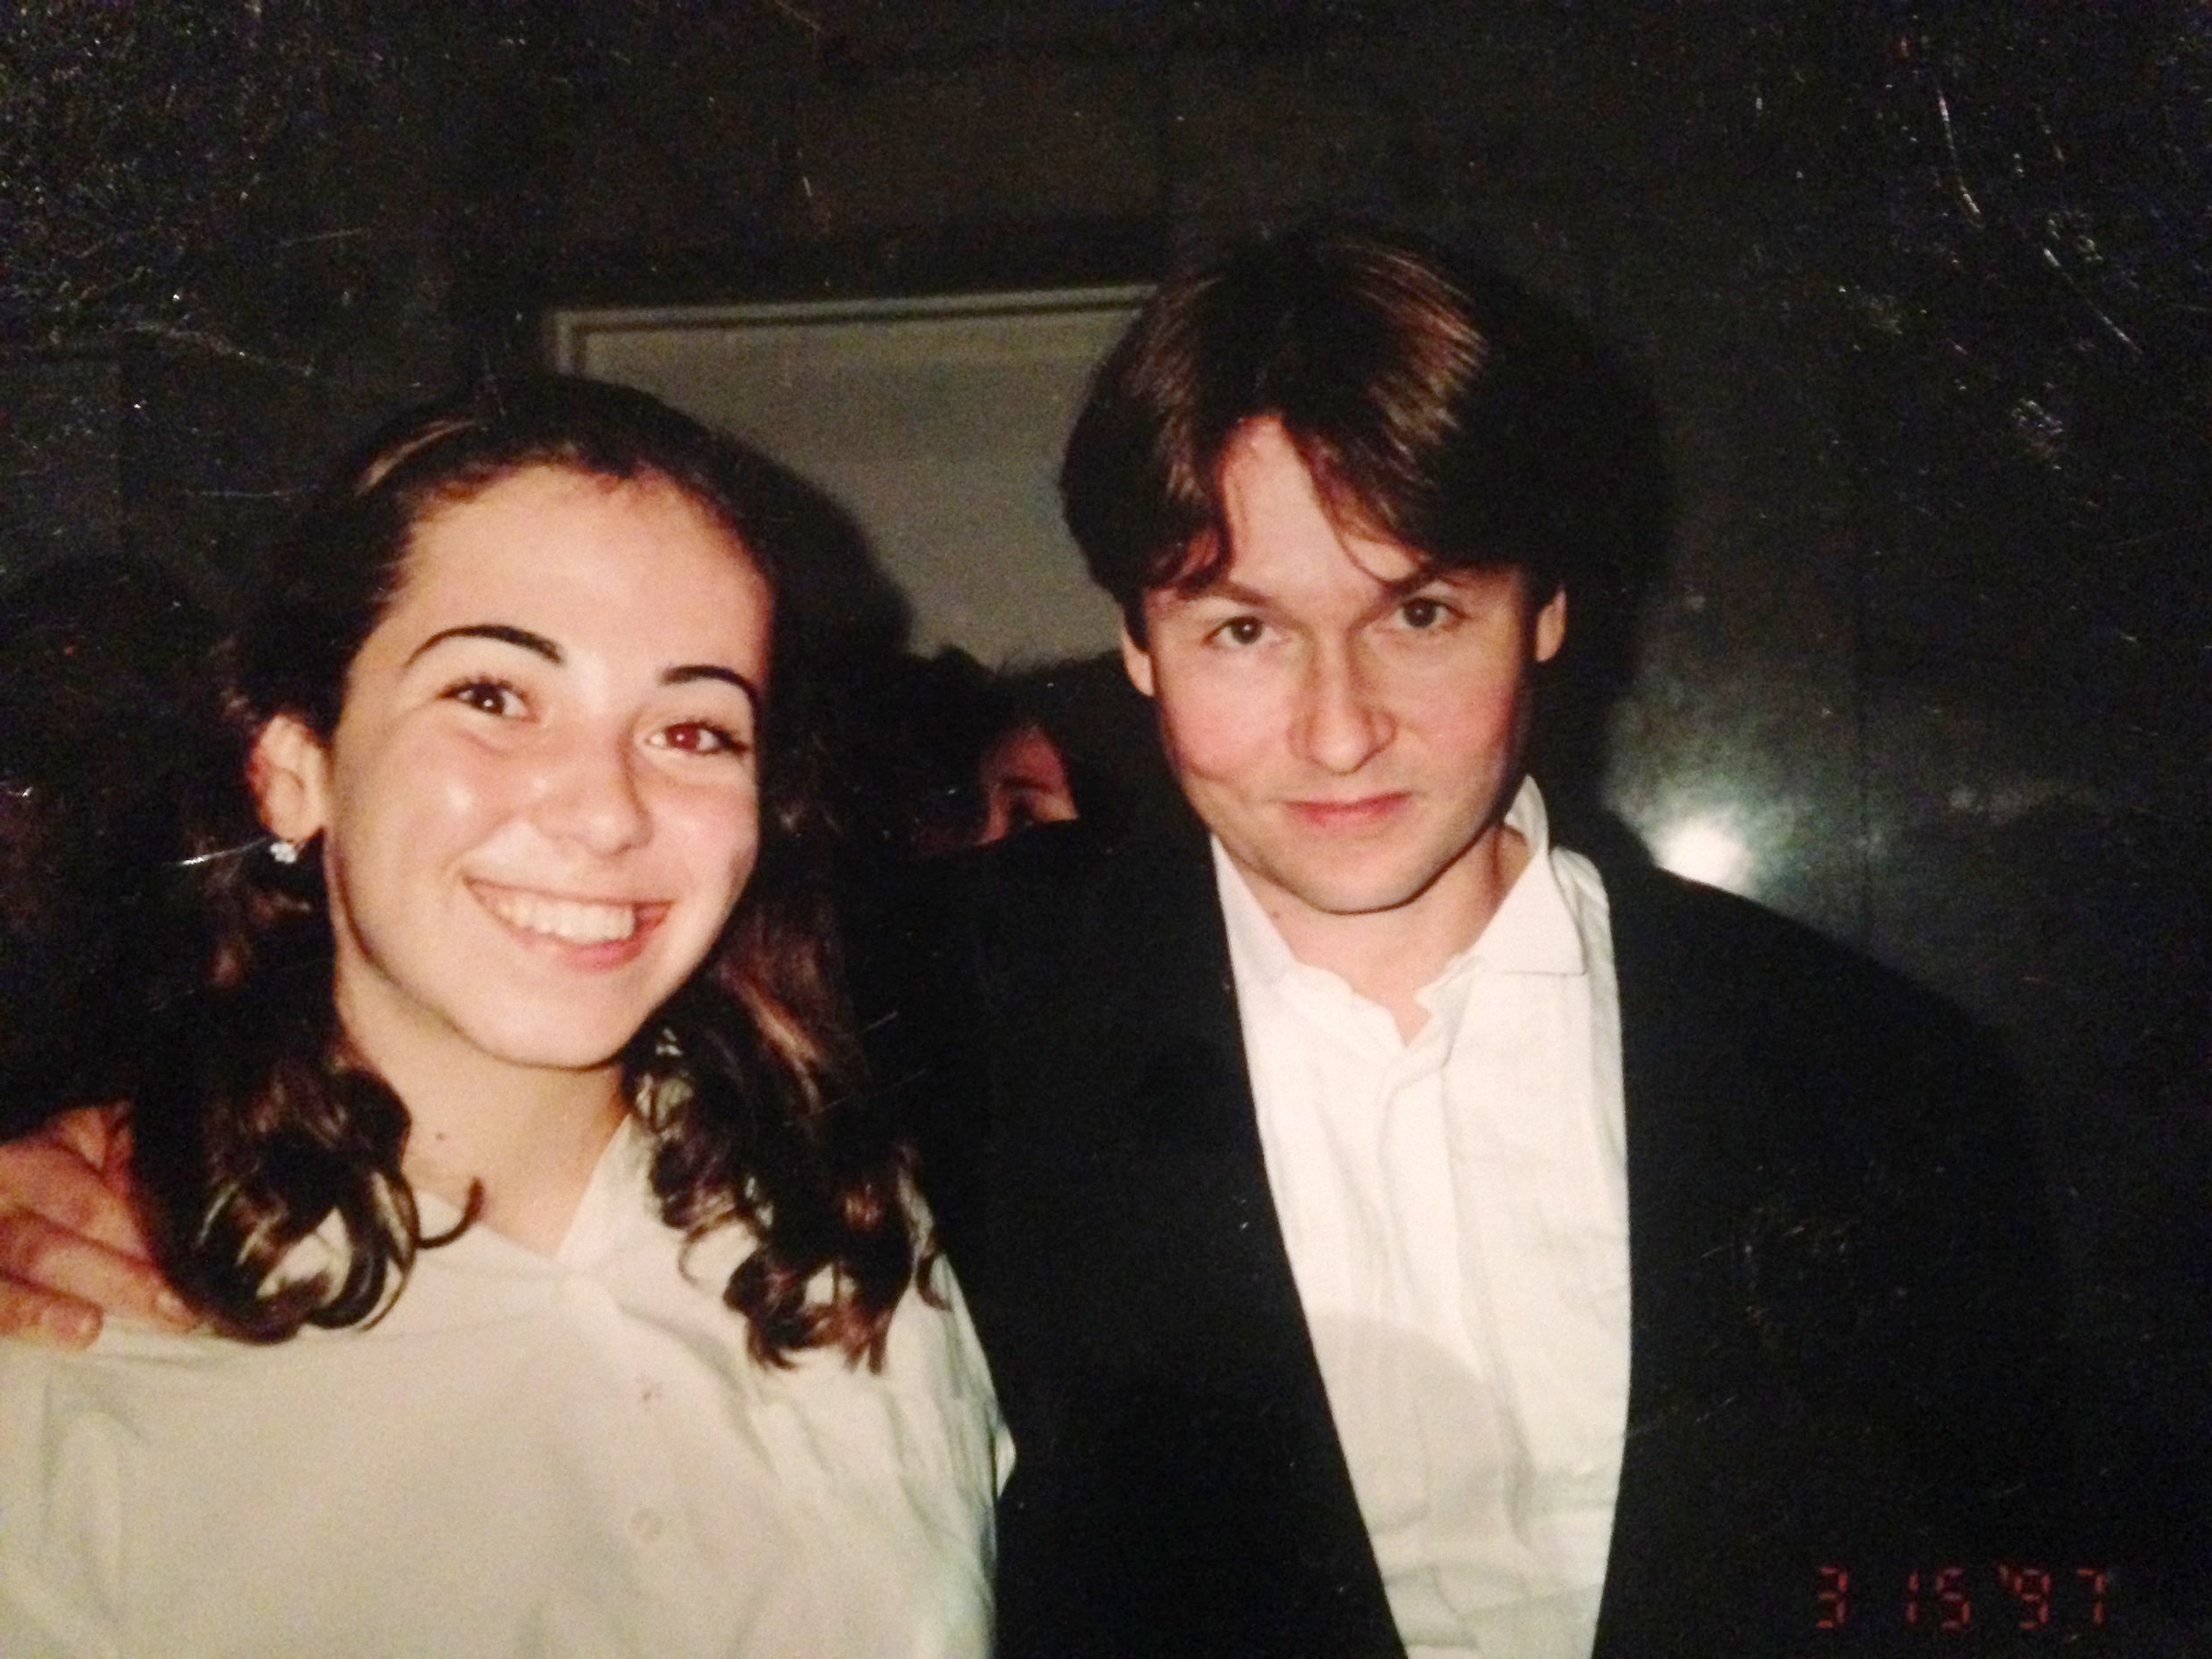 """Here I am, at 15, after playing concertmaster in a side-by-side performance with the LA phil under someone whose music i should """"check out."""" Note the look of Abject disdain on my face."""